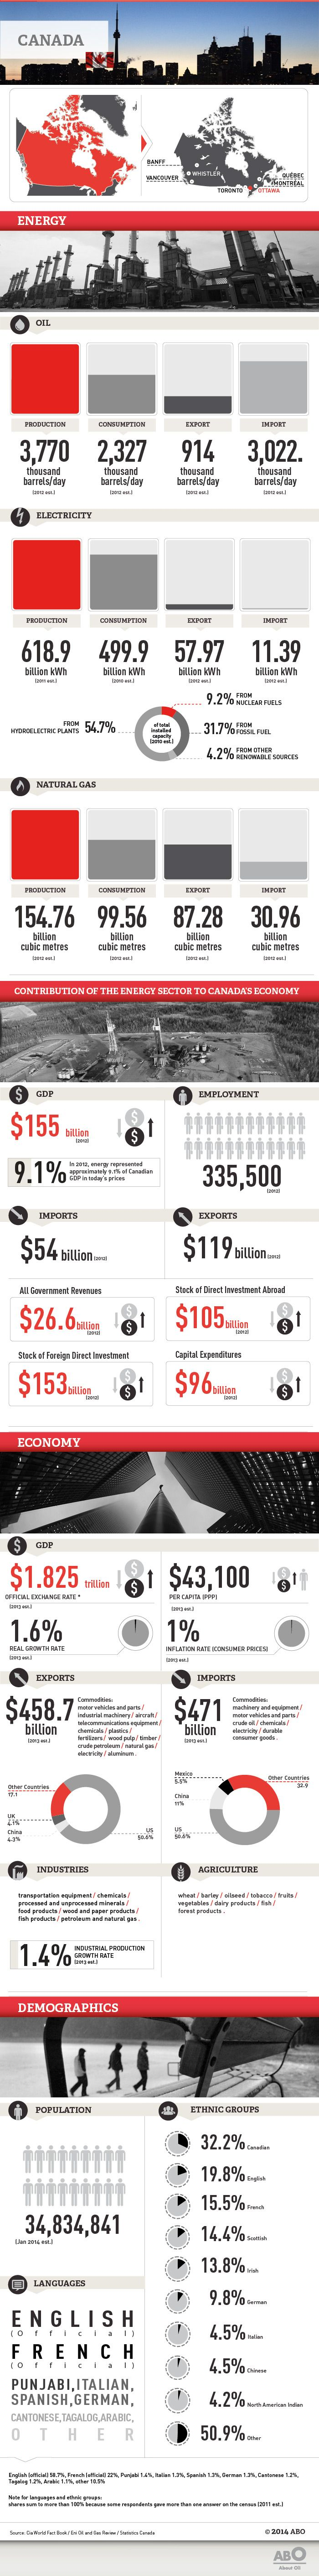 Facts and figures on the energy, economy and demographics of Canada. Source: Eni